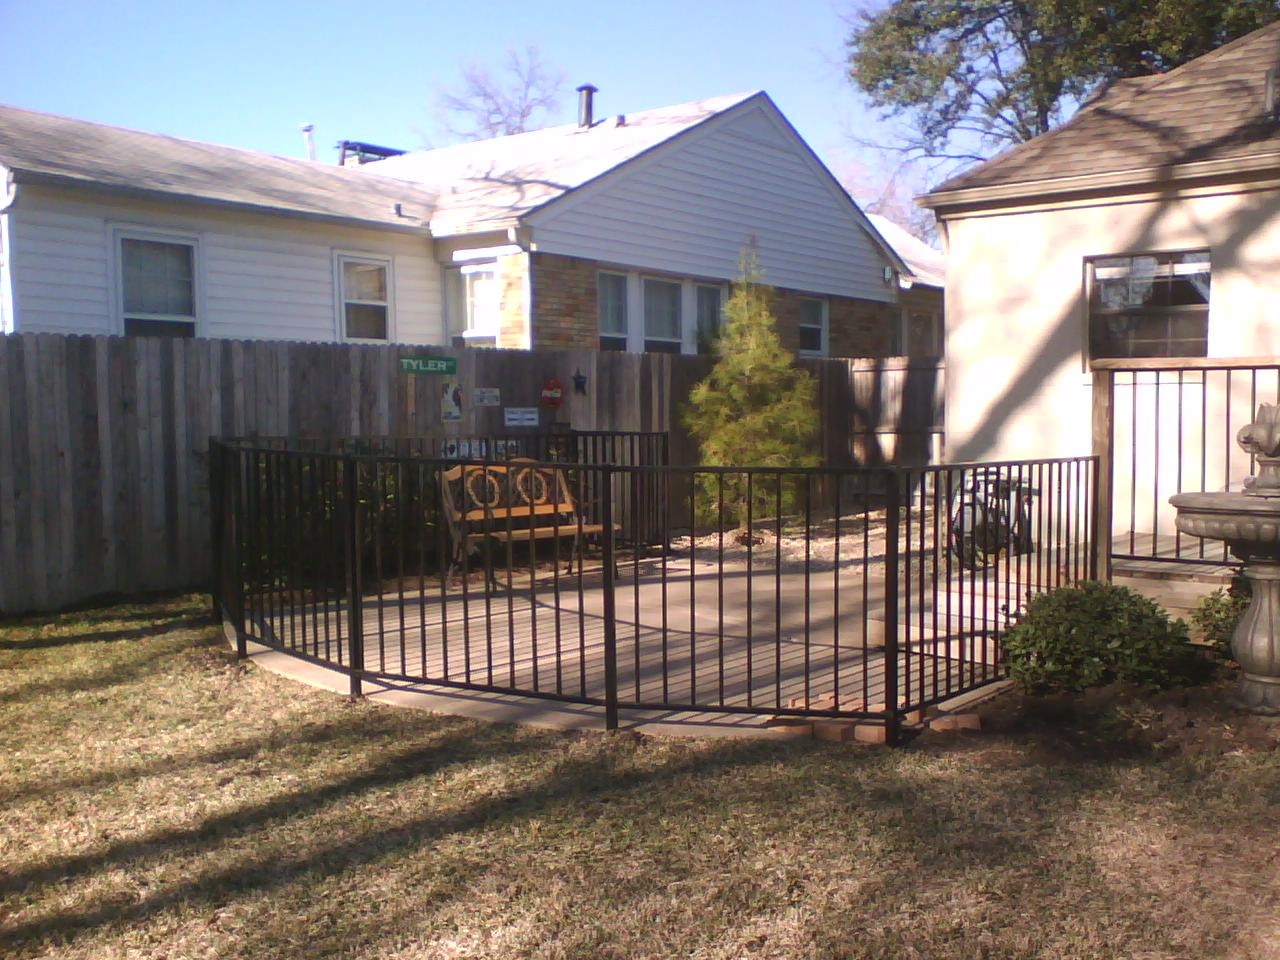 How much would it cost to build a fence for my back yard? - Yahoo